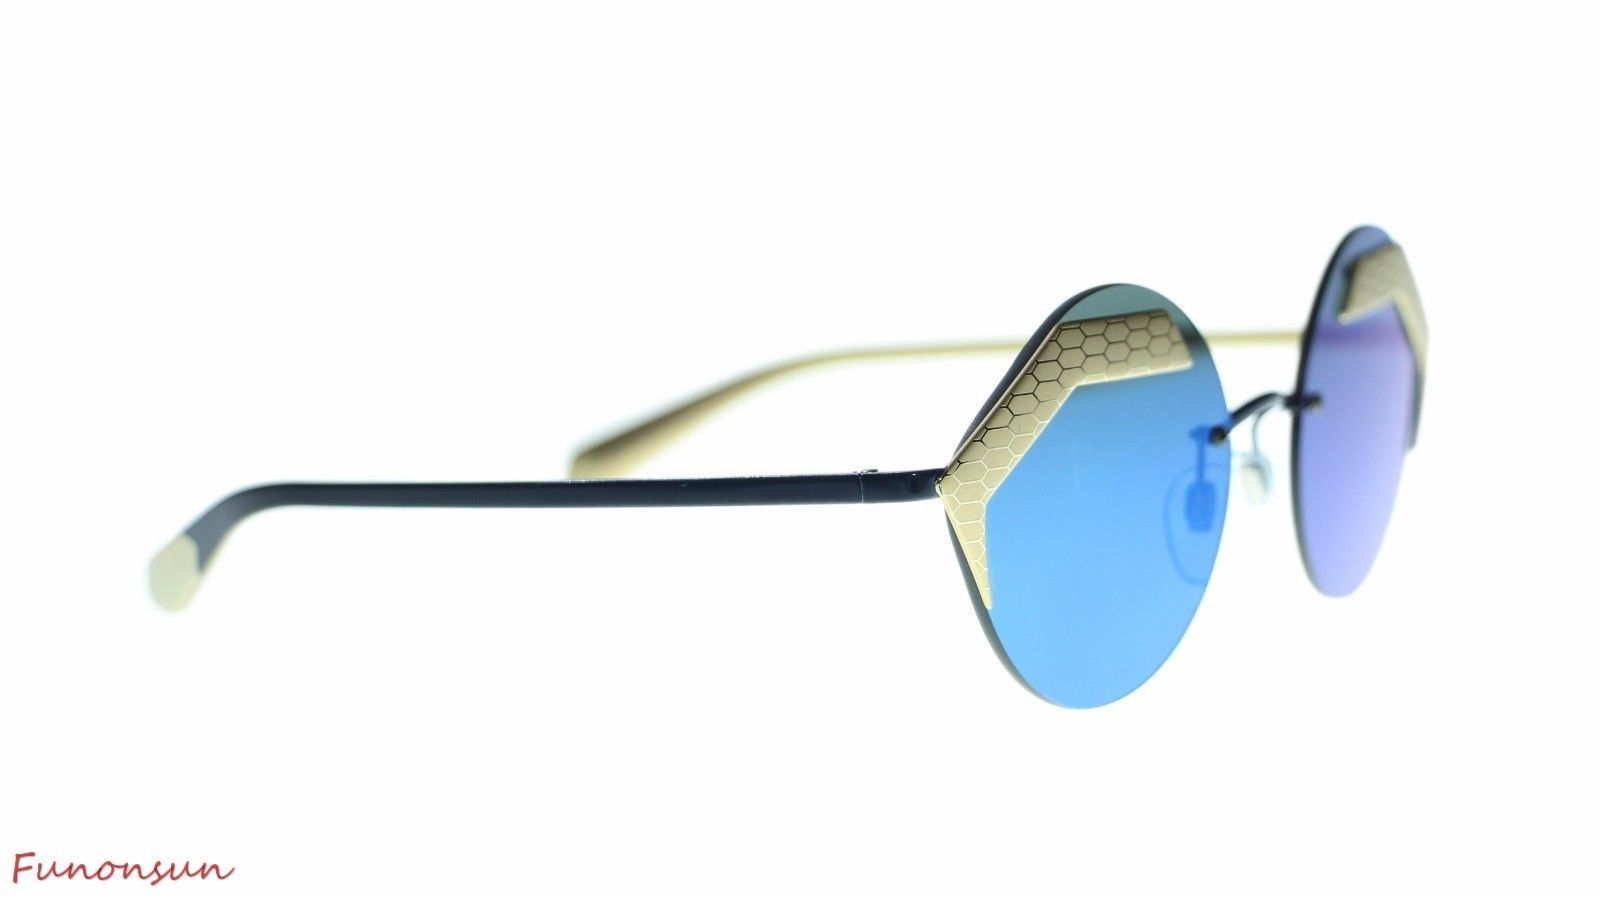 BVLGARI Women's Round Sunglasses BV6089 202255 MT Pale Gold/Blue Lens 55mm